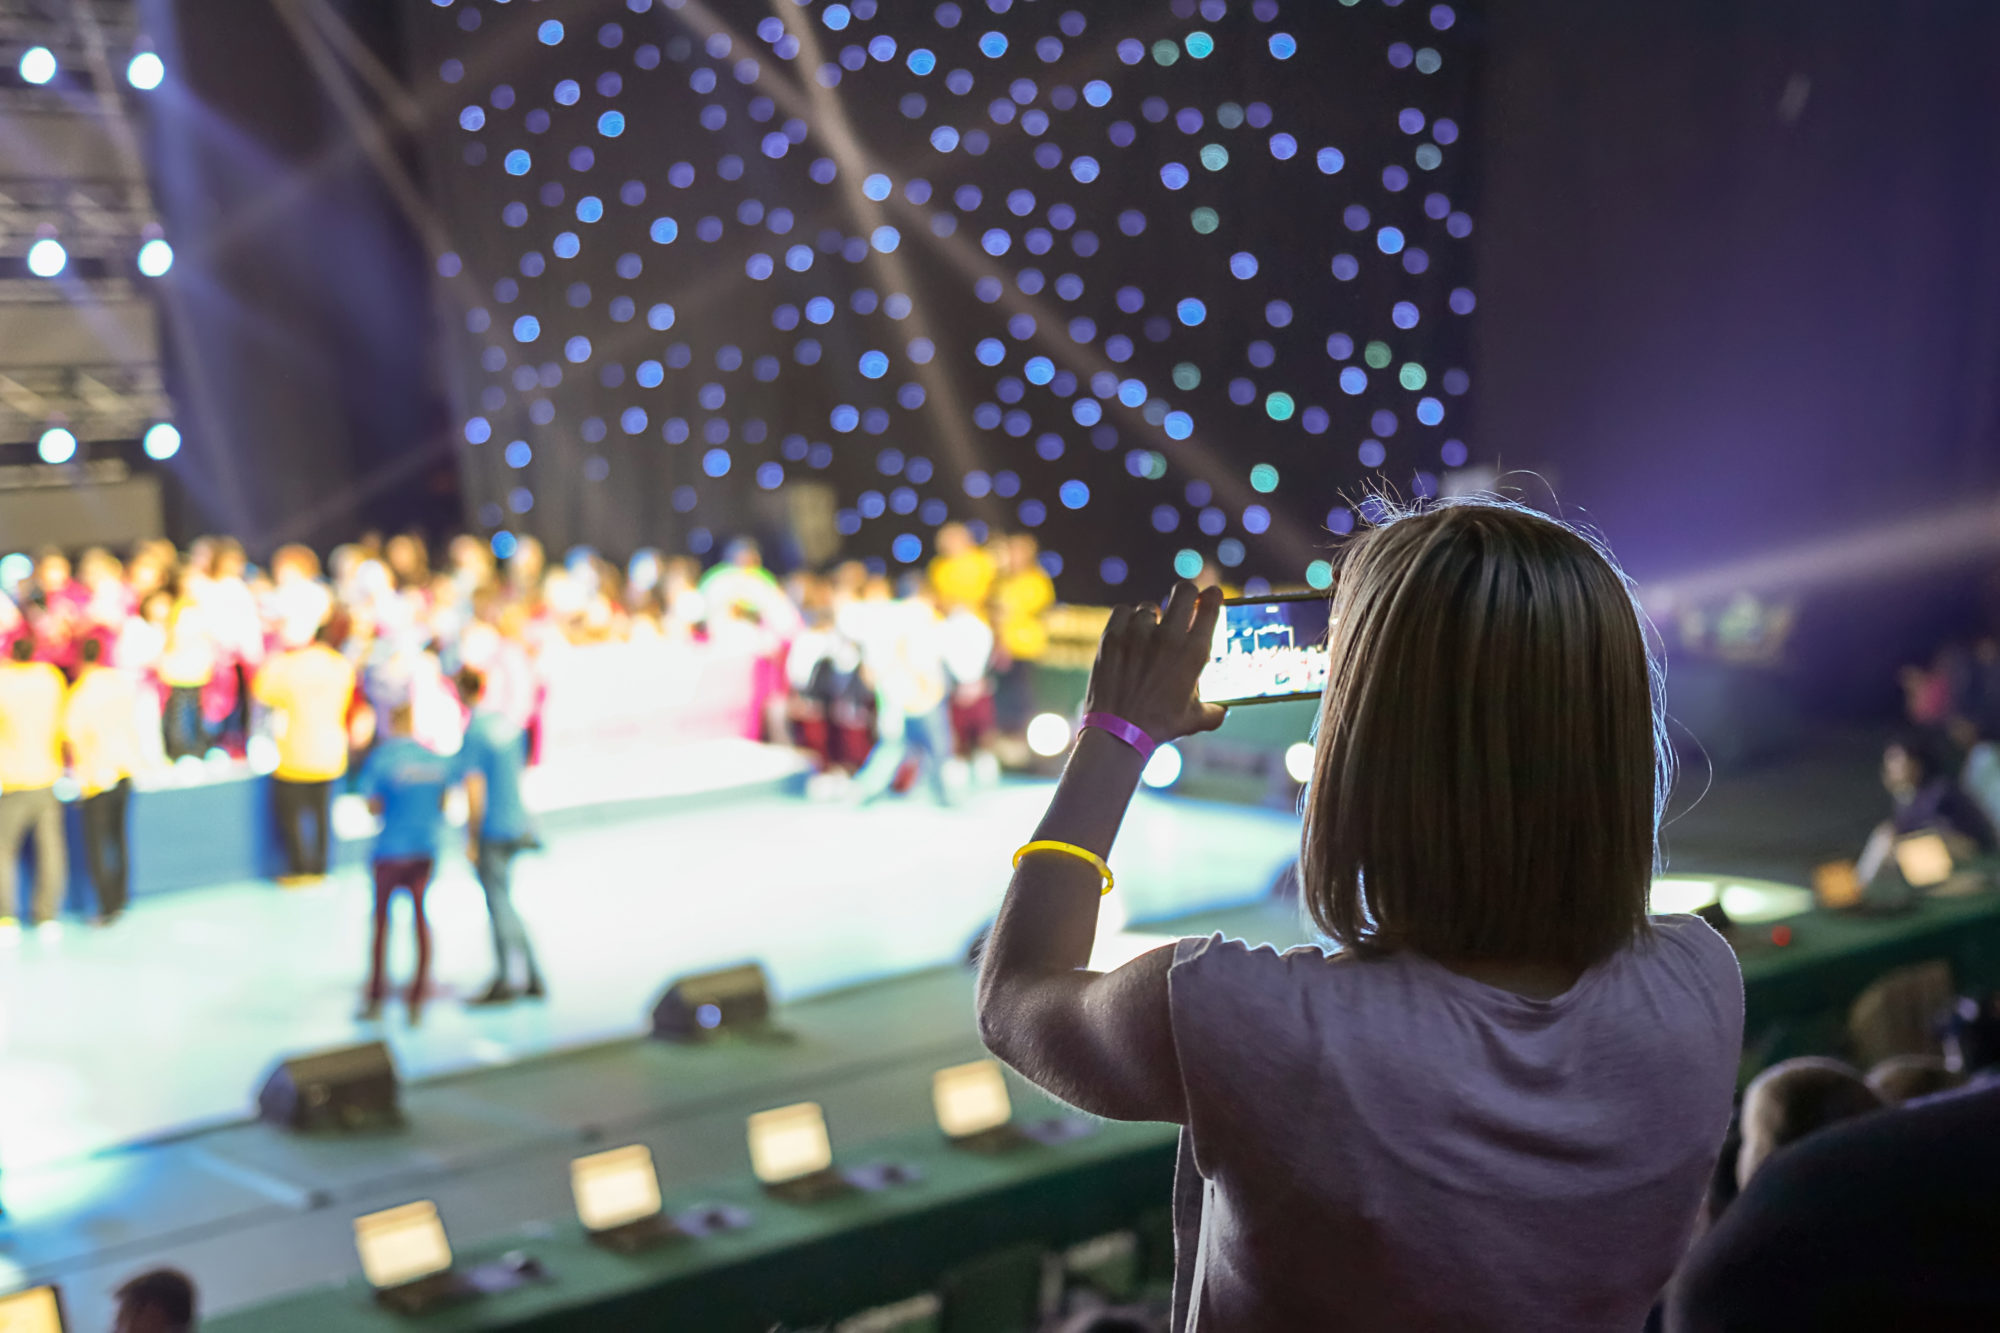 Girl taking picture of stage with smartphone